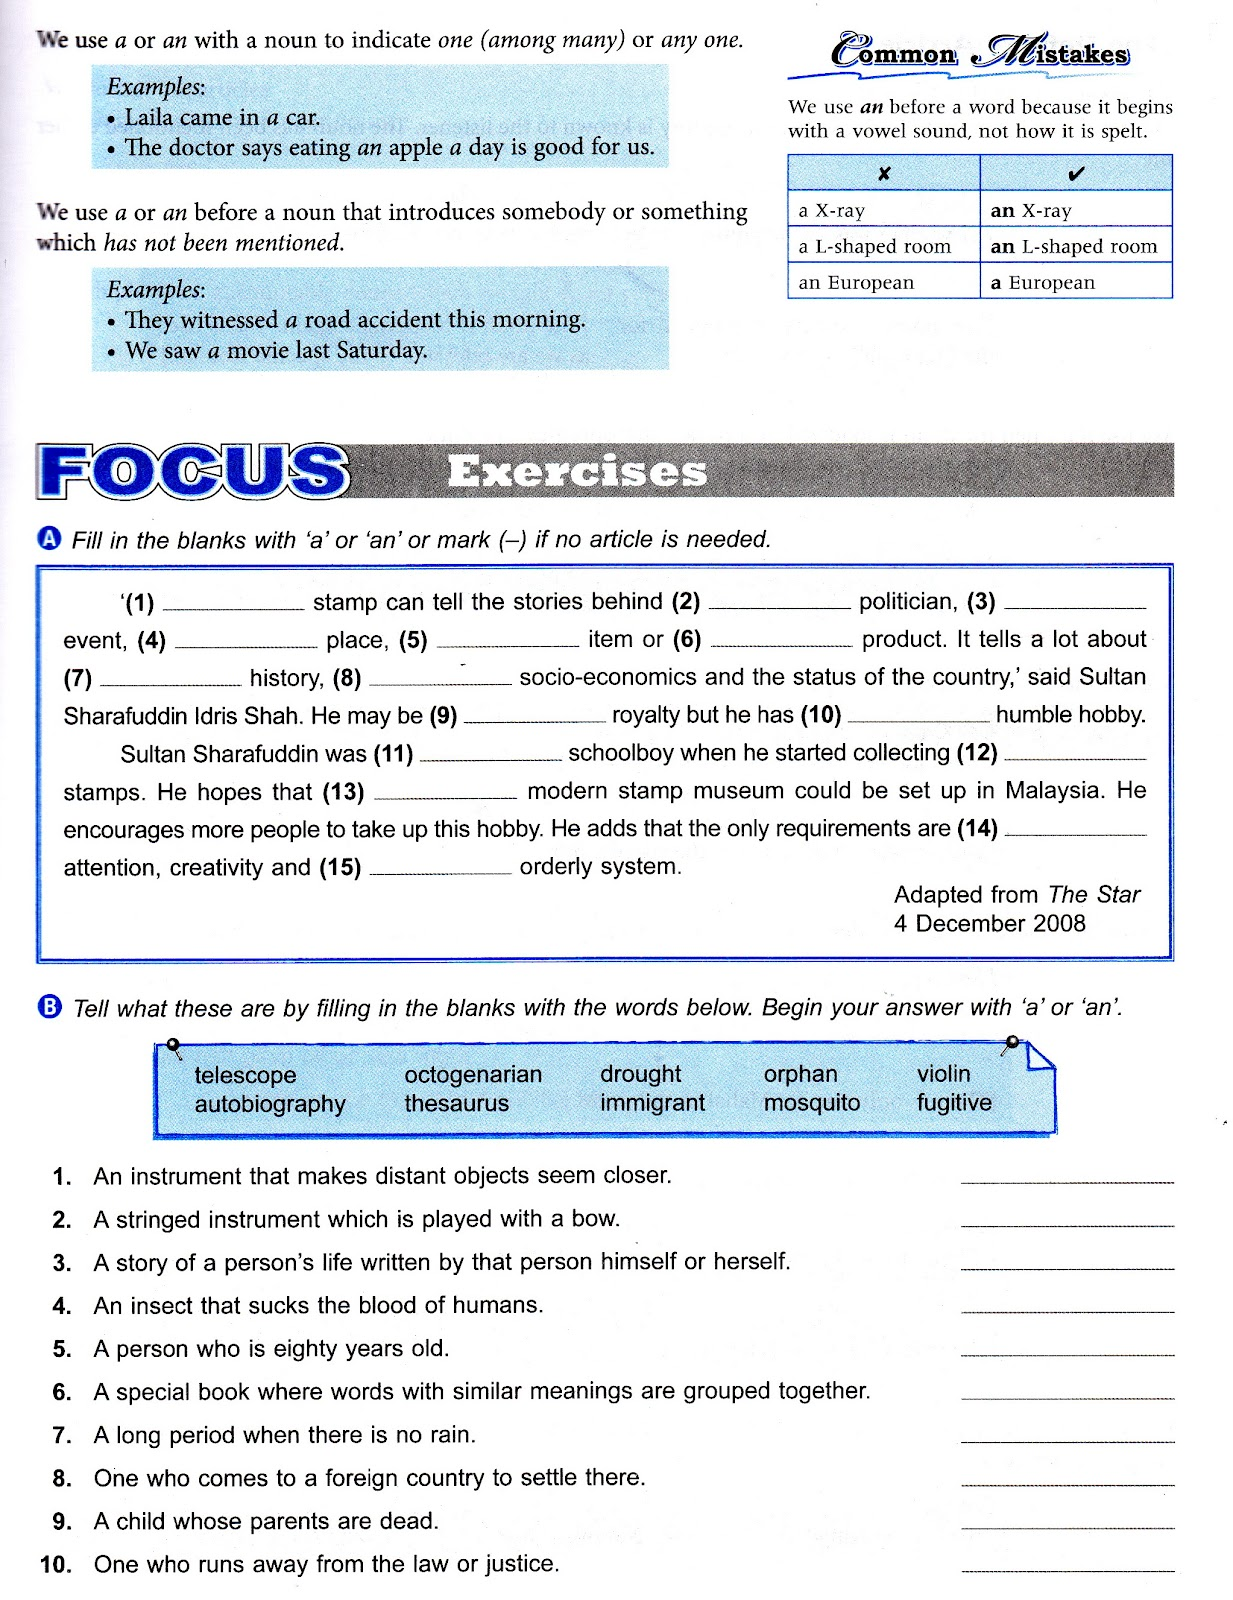 stat 208 focus exercises How to vocal cord exercises for singing for 208 accepted answers how to vocal cord exercises for singing for home jury daily stat selector tv focus long.